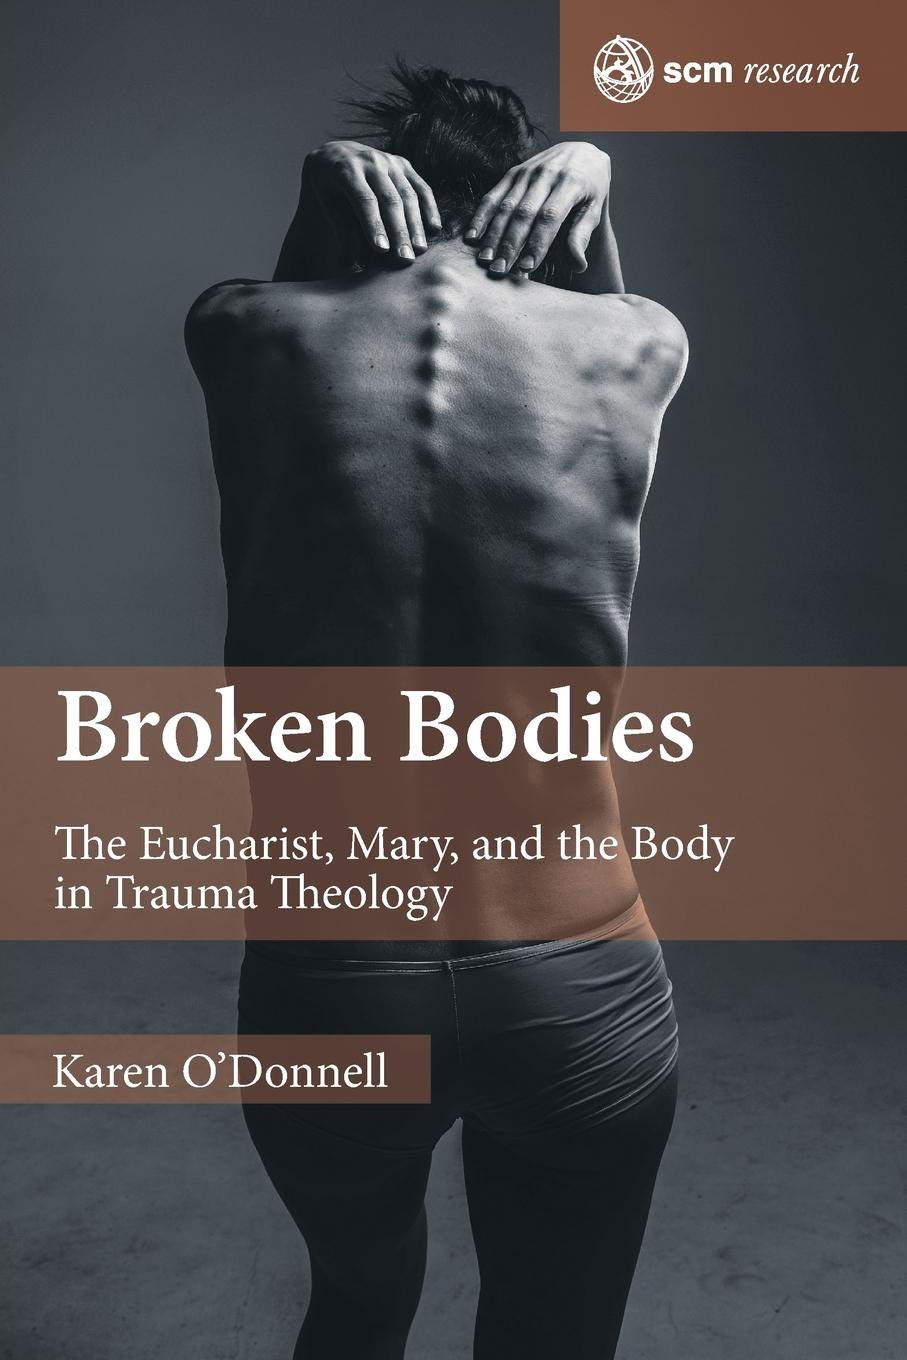 Broken Bodies: The Eucharist, Mary and the Body in